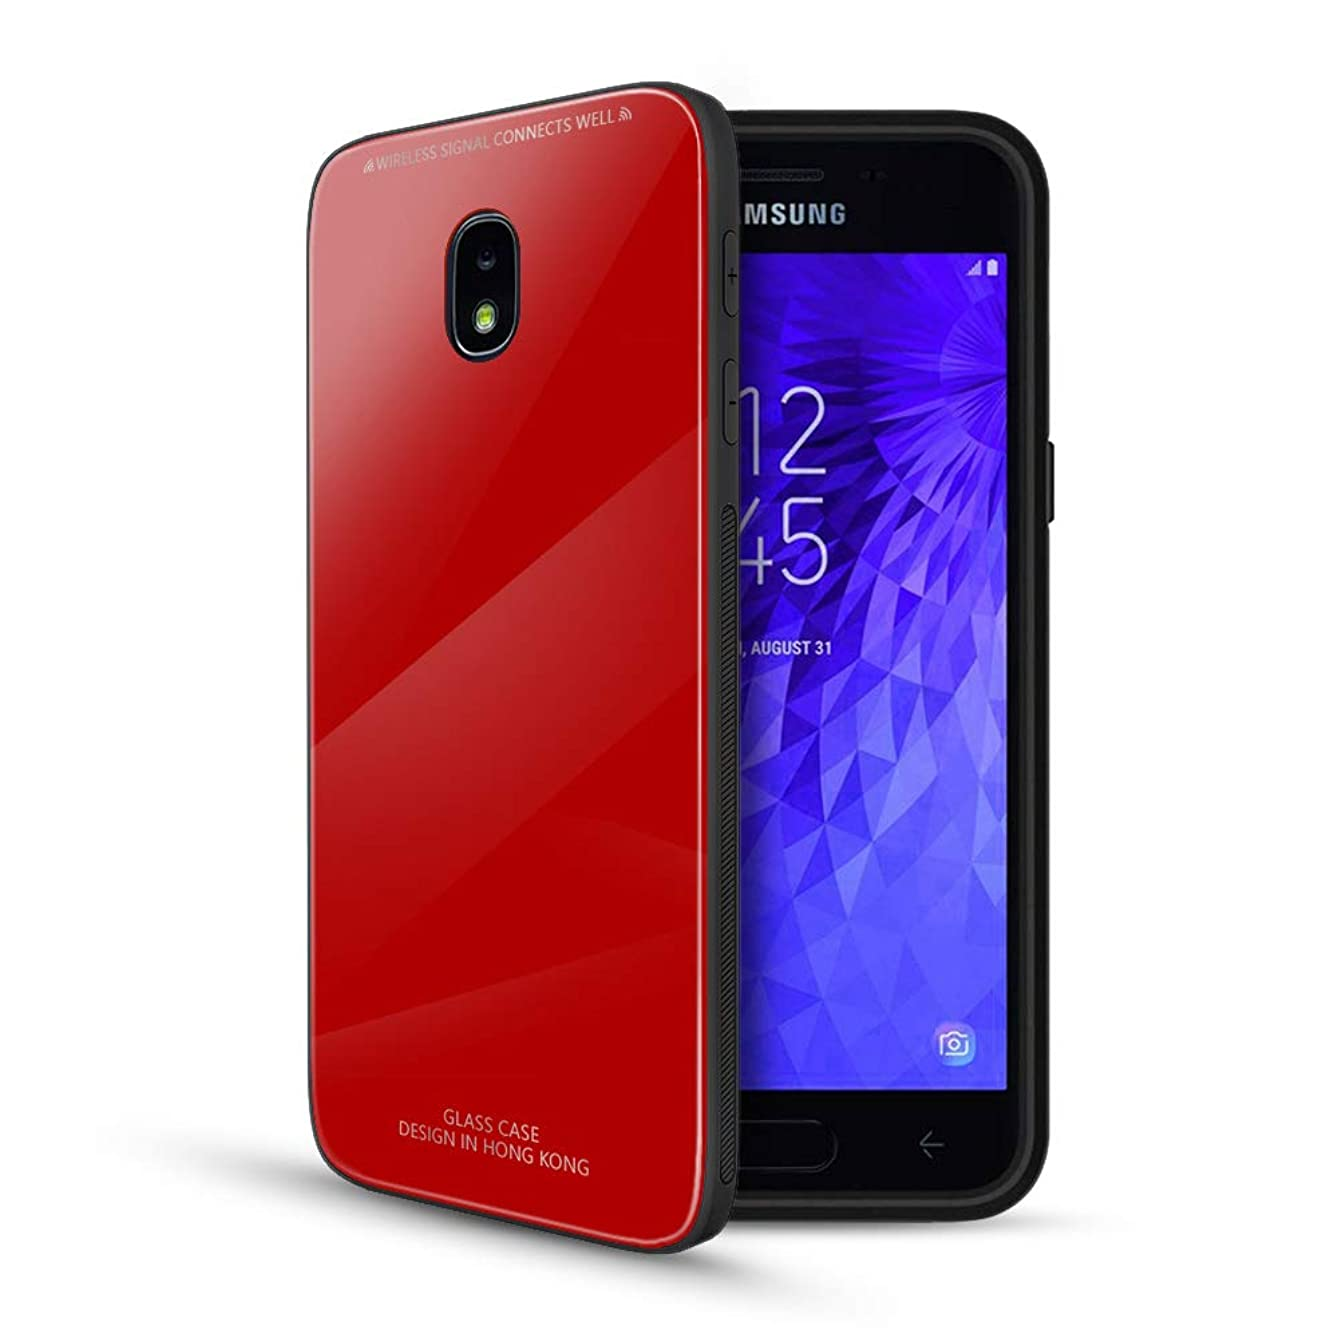 Samsung Galaxy J7 2018 Case, Tempered Glass + TPU Bumper Full Body Protection Shockproof Cover Case Drop Protection for Samsung Galaxy J7 2018/J7 V 2nd Gen/J7 Aero/J7 Star/J7 Top/J7 Crown (Red)